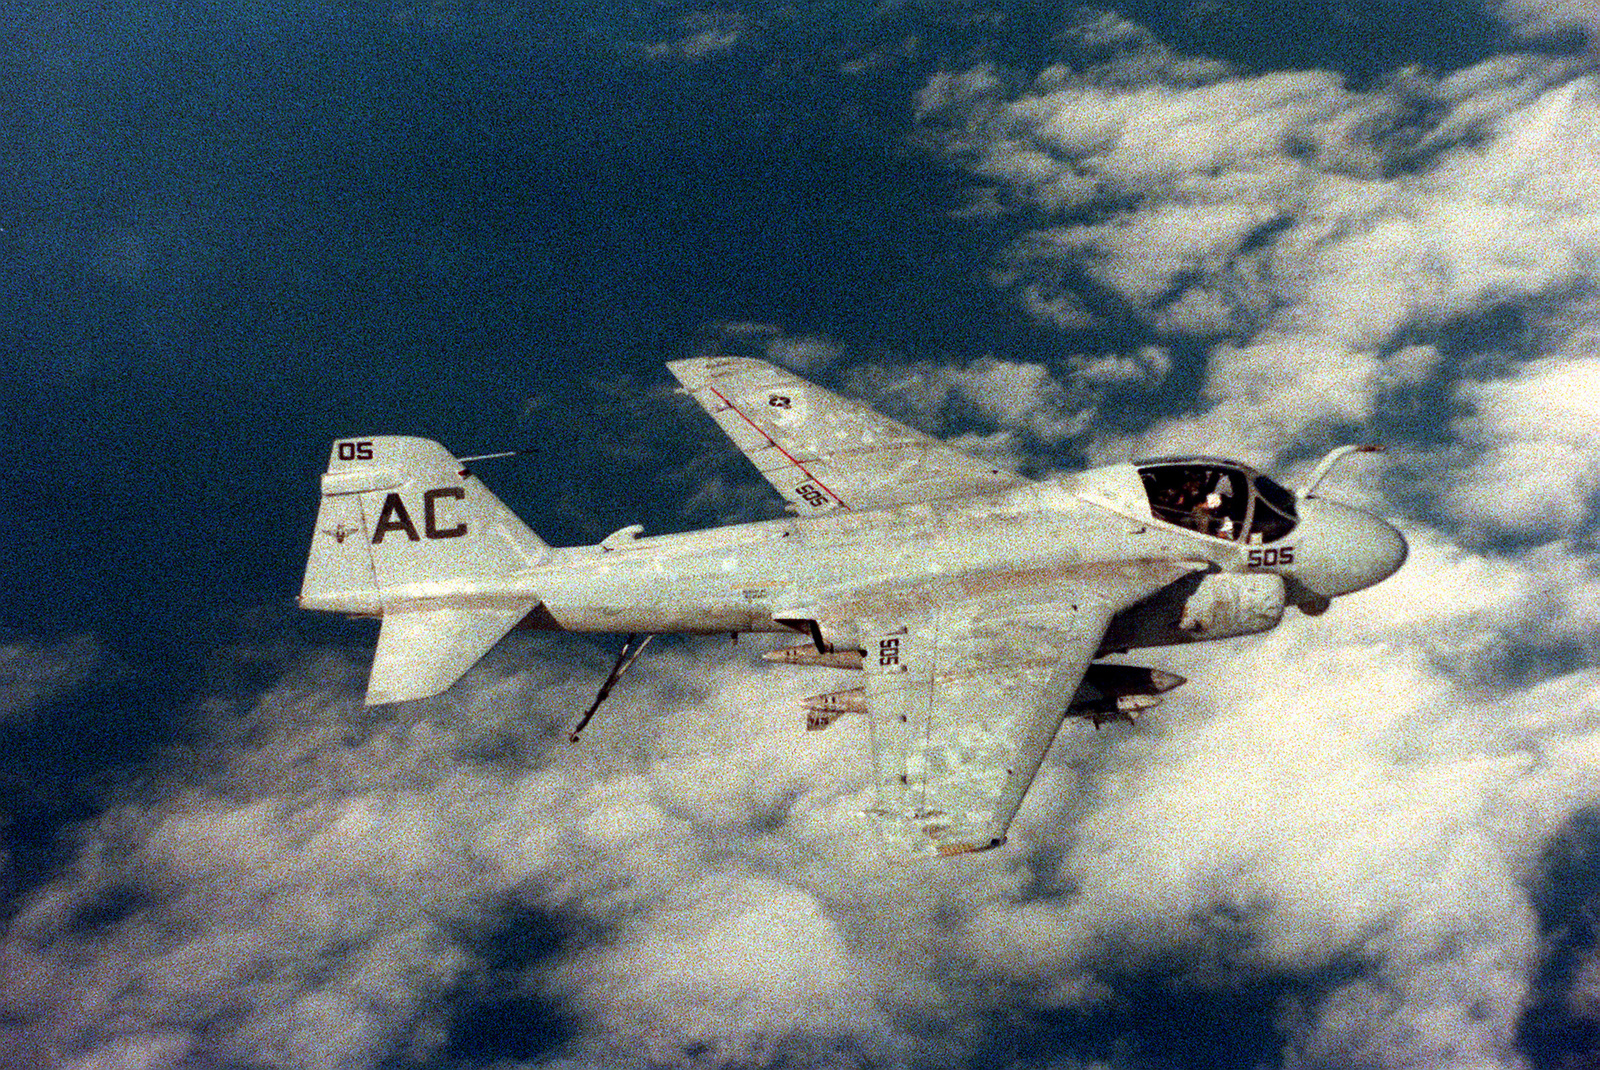 An air-to-air right side view of an Attack Squadron 75 (VA-75) A-6E Intruder aircraft, with tail hook down, preparing to land aboard the aircraft carrier USS JOHN F. KENNEDY (CV-67)